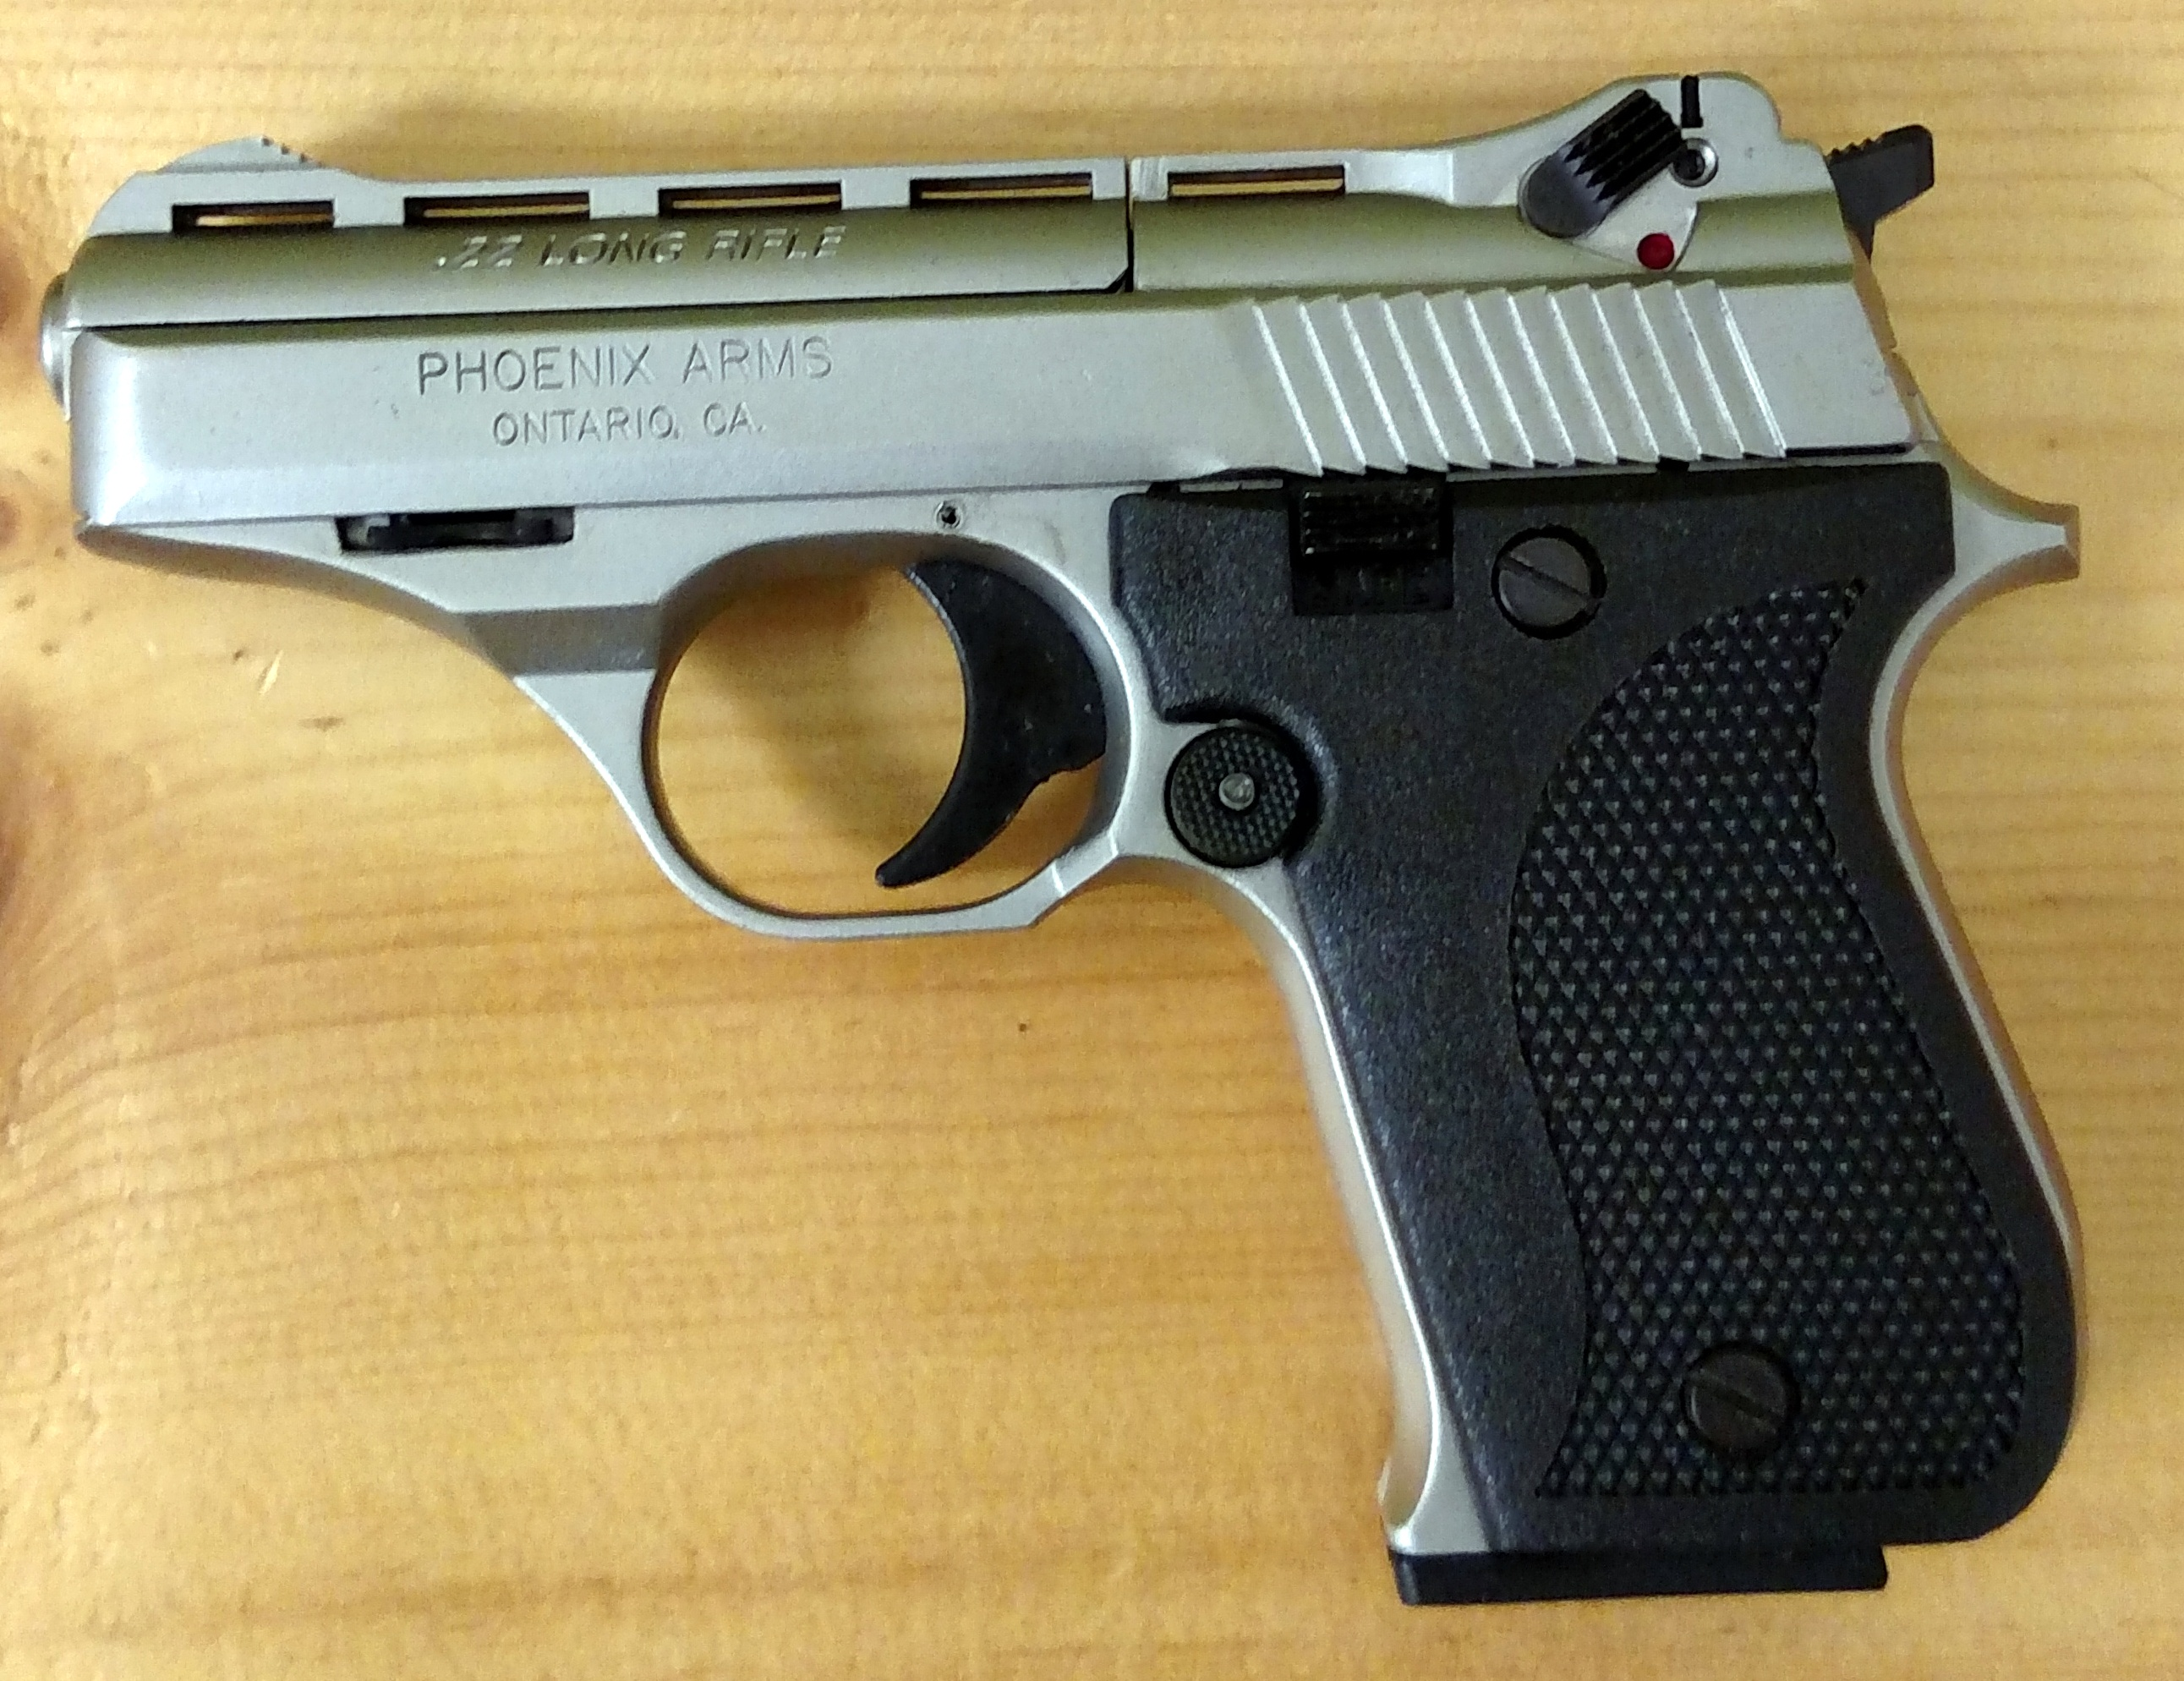 Brand New Phoenix Arms Hp22a Nickel finish conceal carry ...